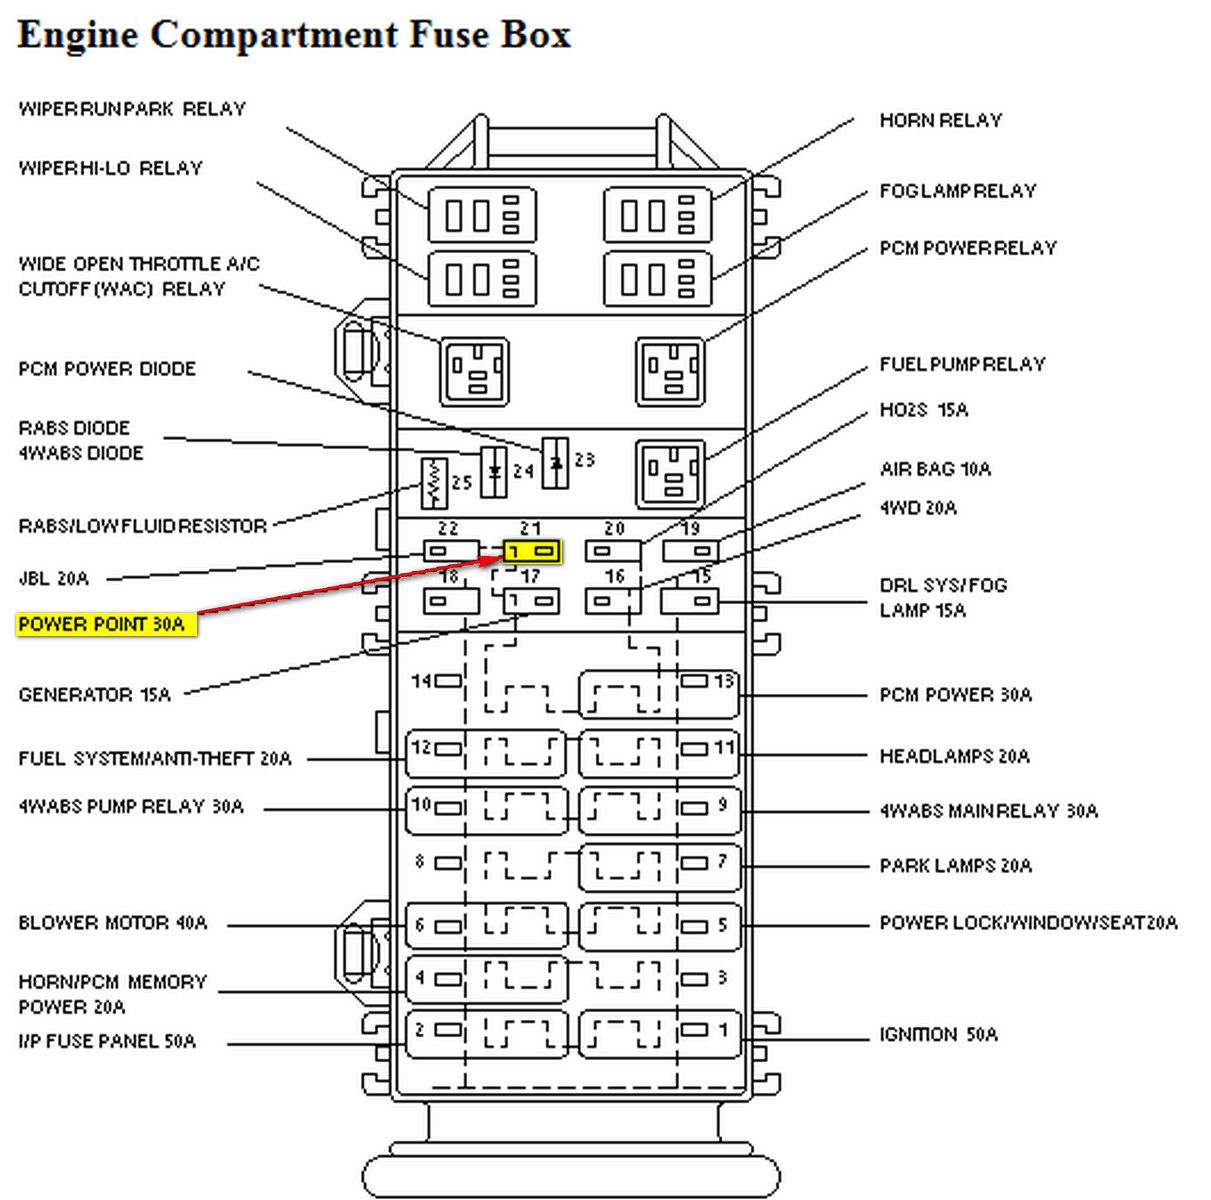 hight resolution of 1997 chevy 3500 fuse box wiring library1997 ford ranger fuse box diagram truck part diagrams 97